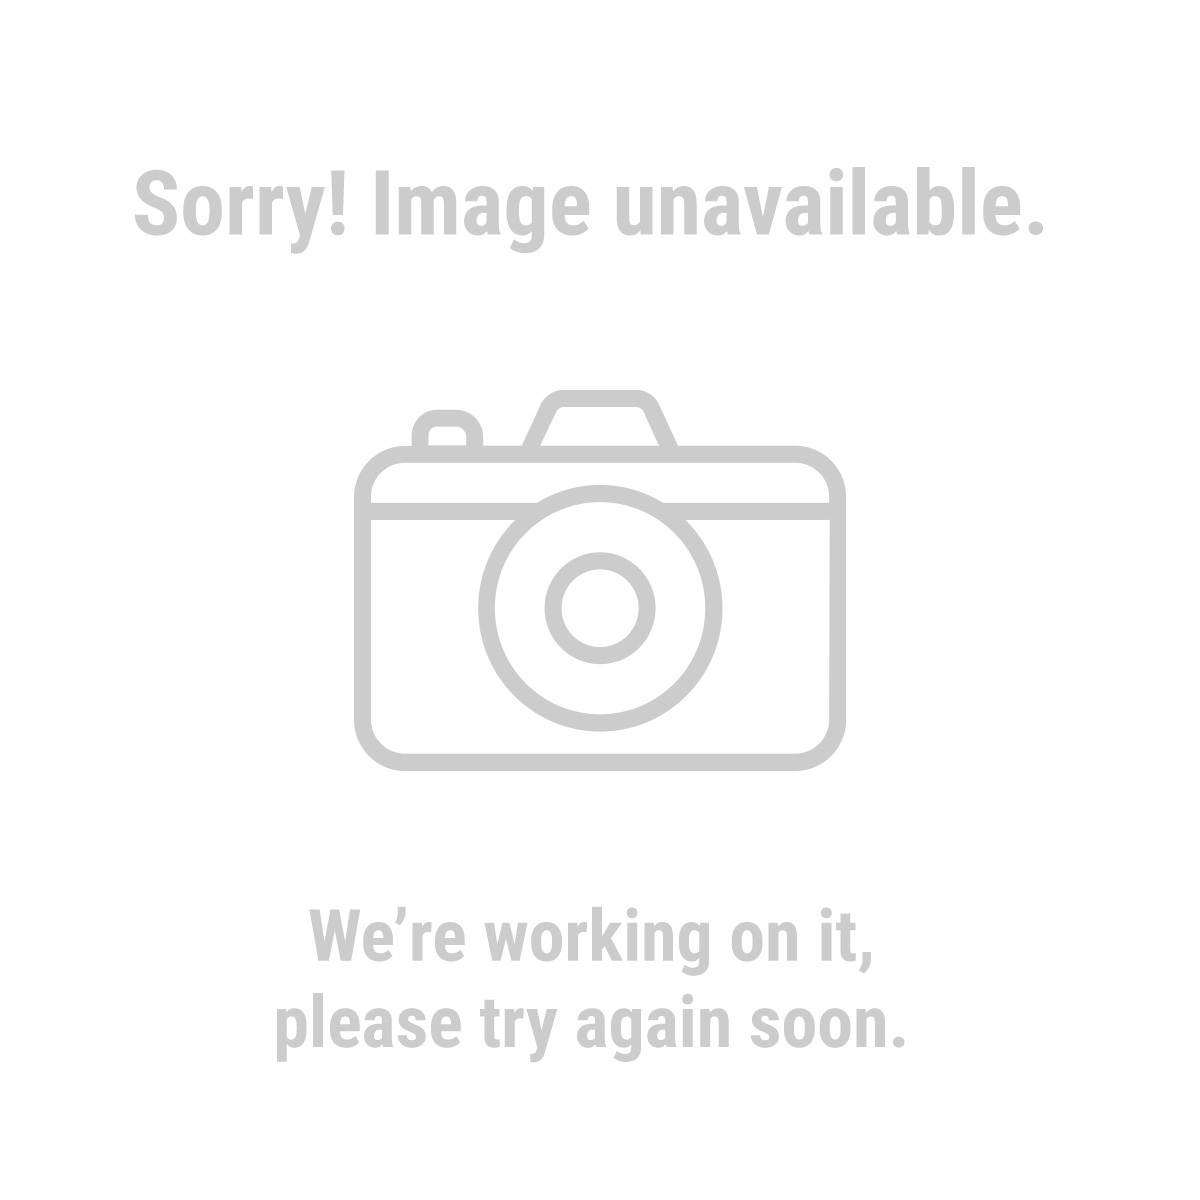 Drummond 63321 1/3 HP Submersible Sump Pump with Vertical Float 3400 GPH